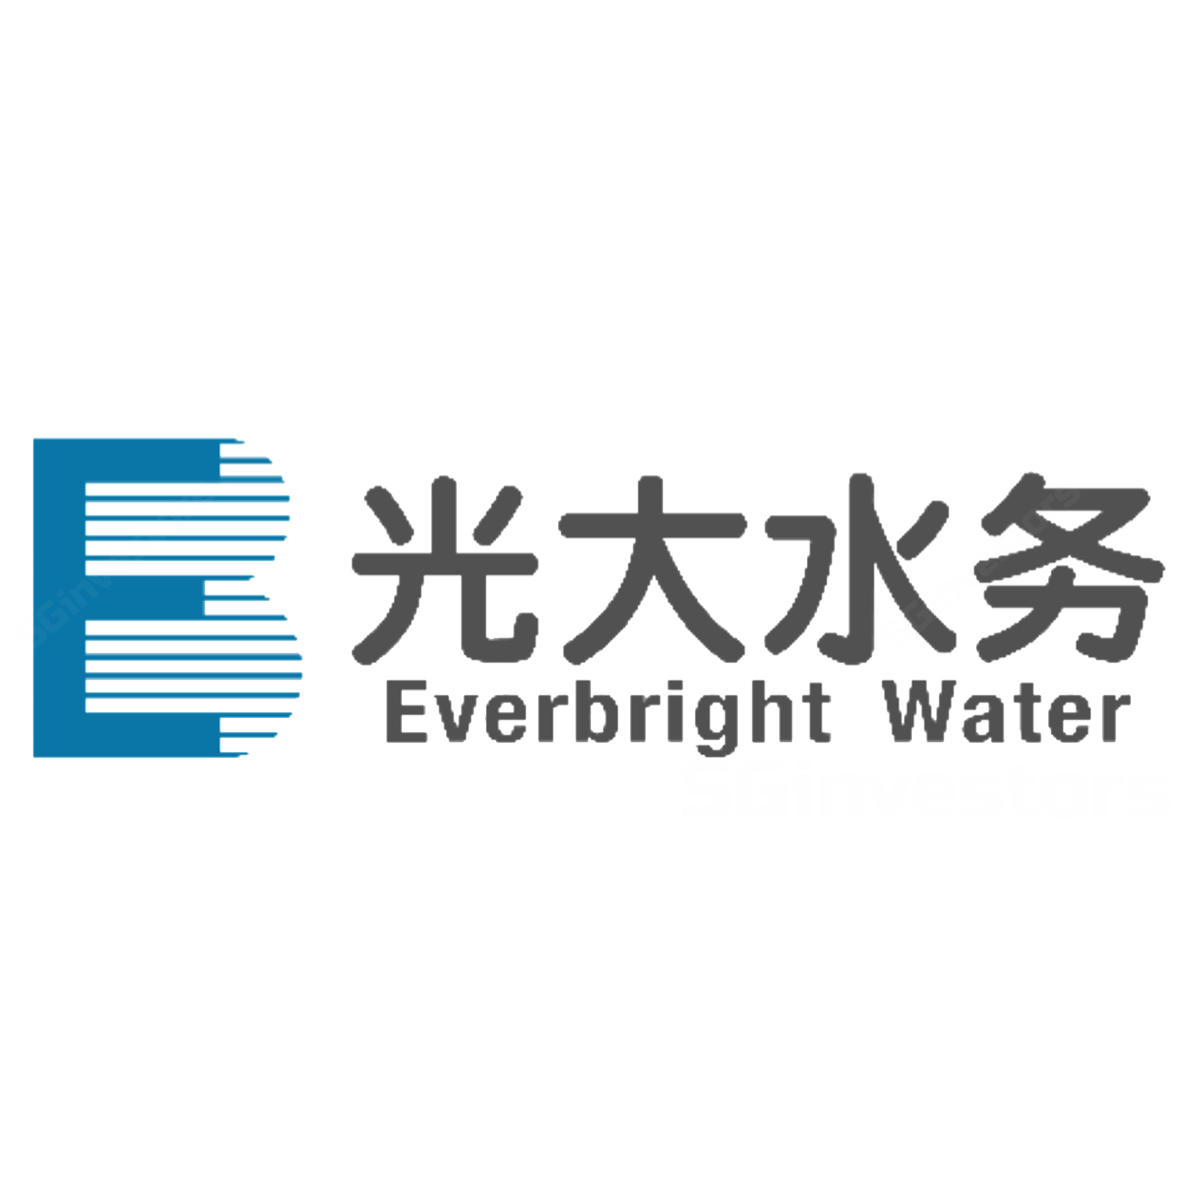 China Everbright Water - DBS Vickers 2017-04-03: Another breakthrough